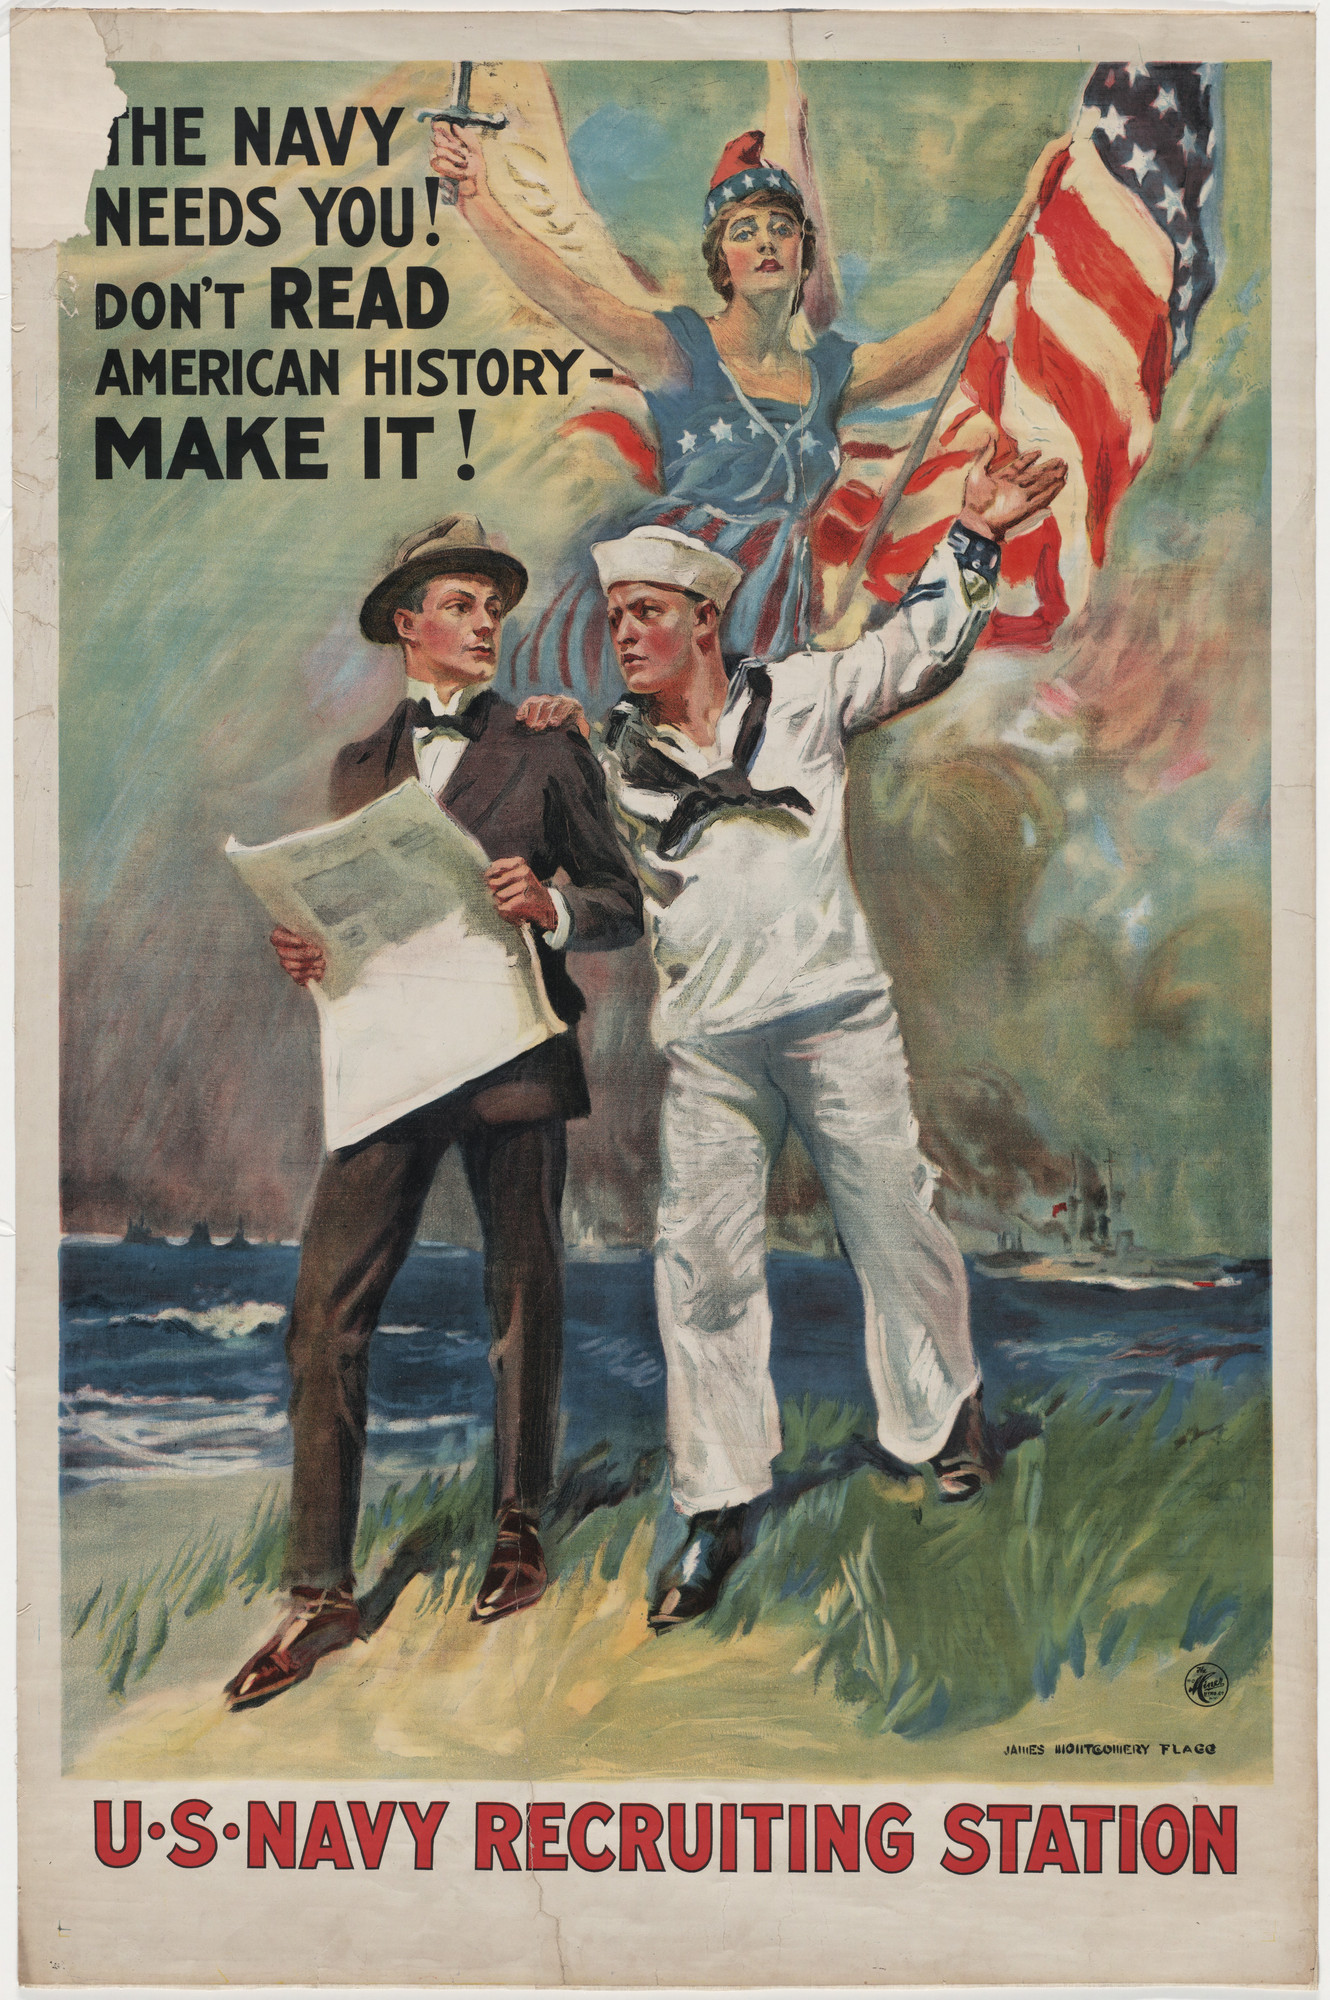 James Montgomery Flagg. The Navy Needs You! Don't Read American History - Make It! U.S. Navy Recruiting Station. 1914-18